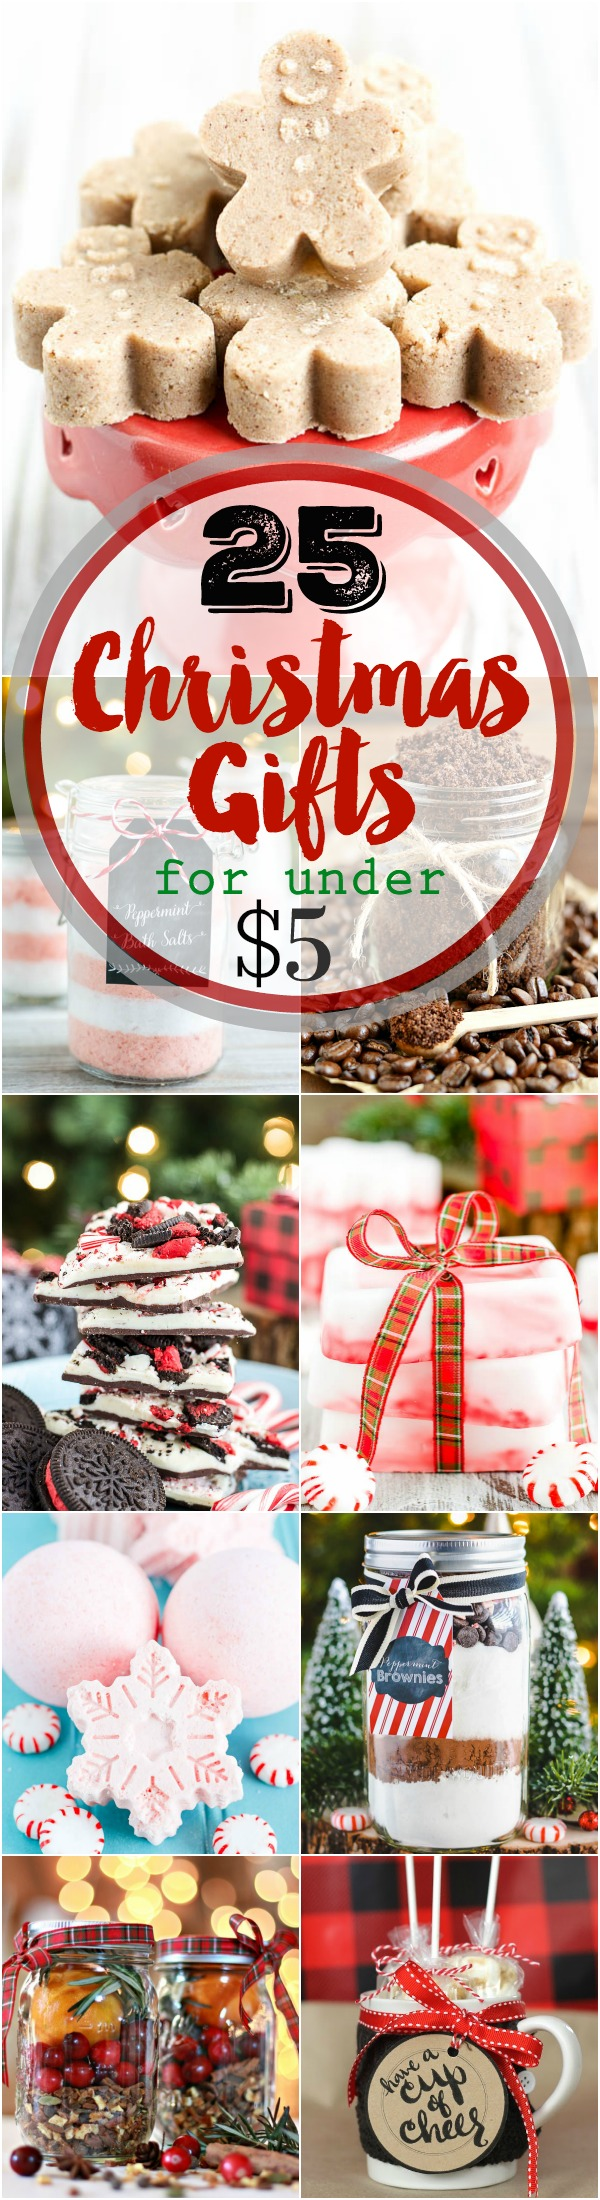 Christmas gift ideas for under $5.00